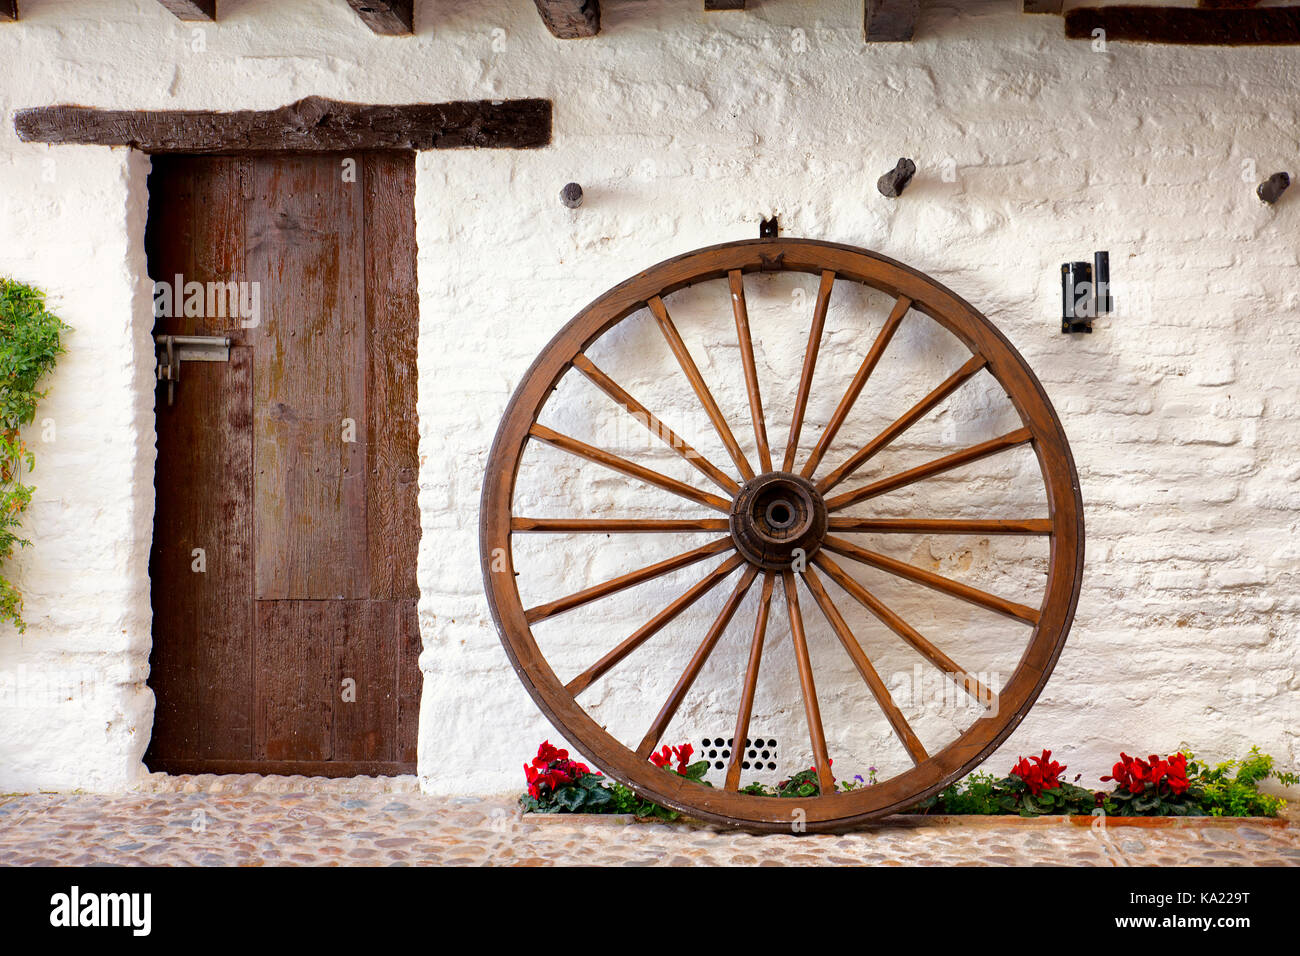 wooden cartwheel and rustic door in typical andalusian patio. Cordoba, Spain - Stock Image